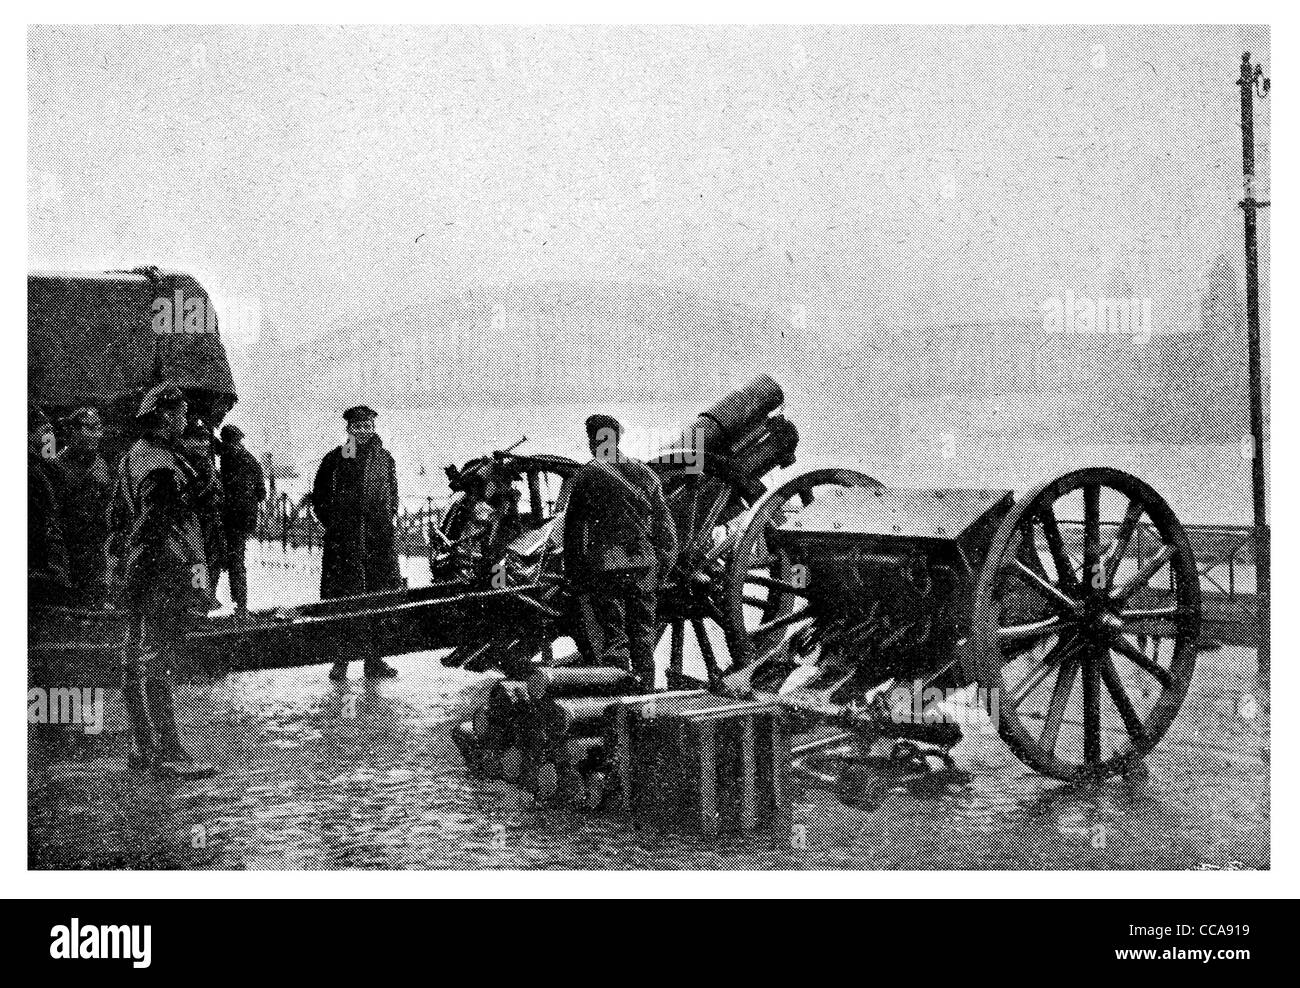 1918 British howitzer Cologne firing on Rhine December National Anthem artillery piece shells shell gunner crew - Stock Image